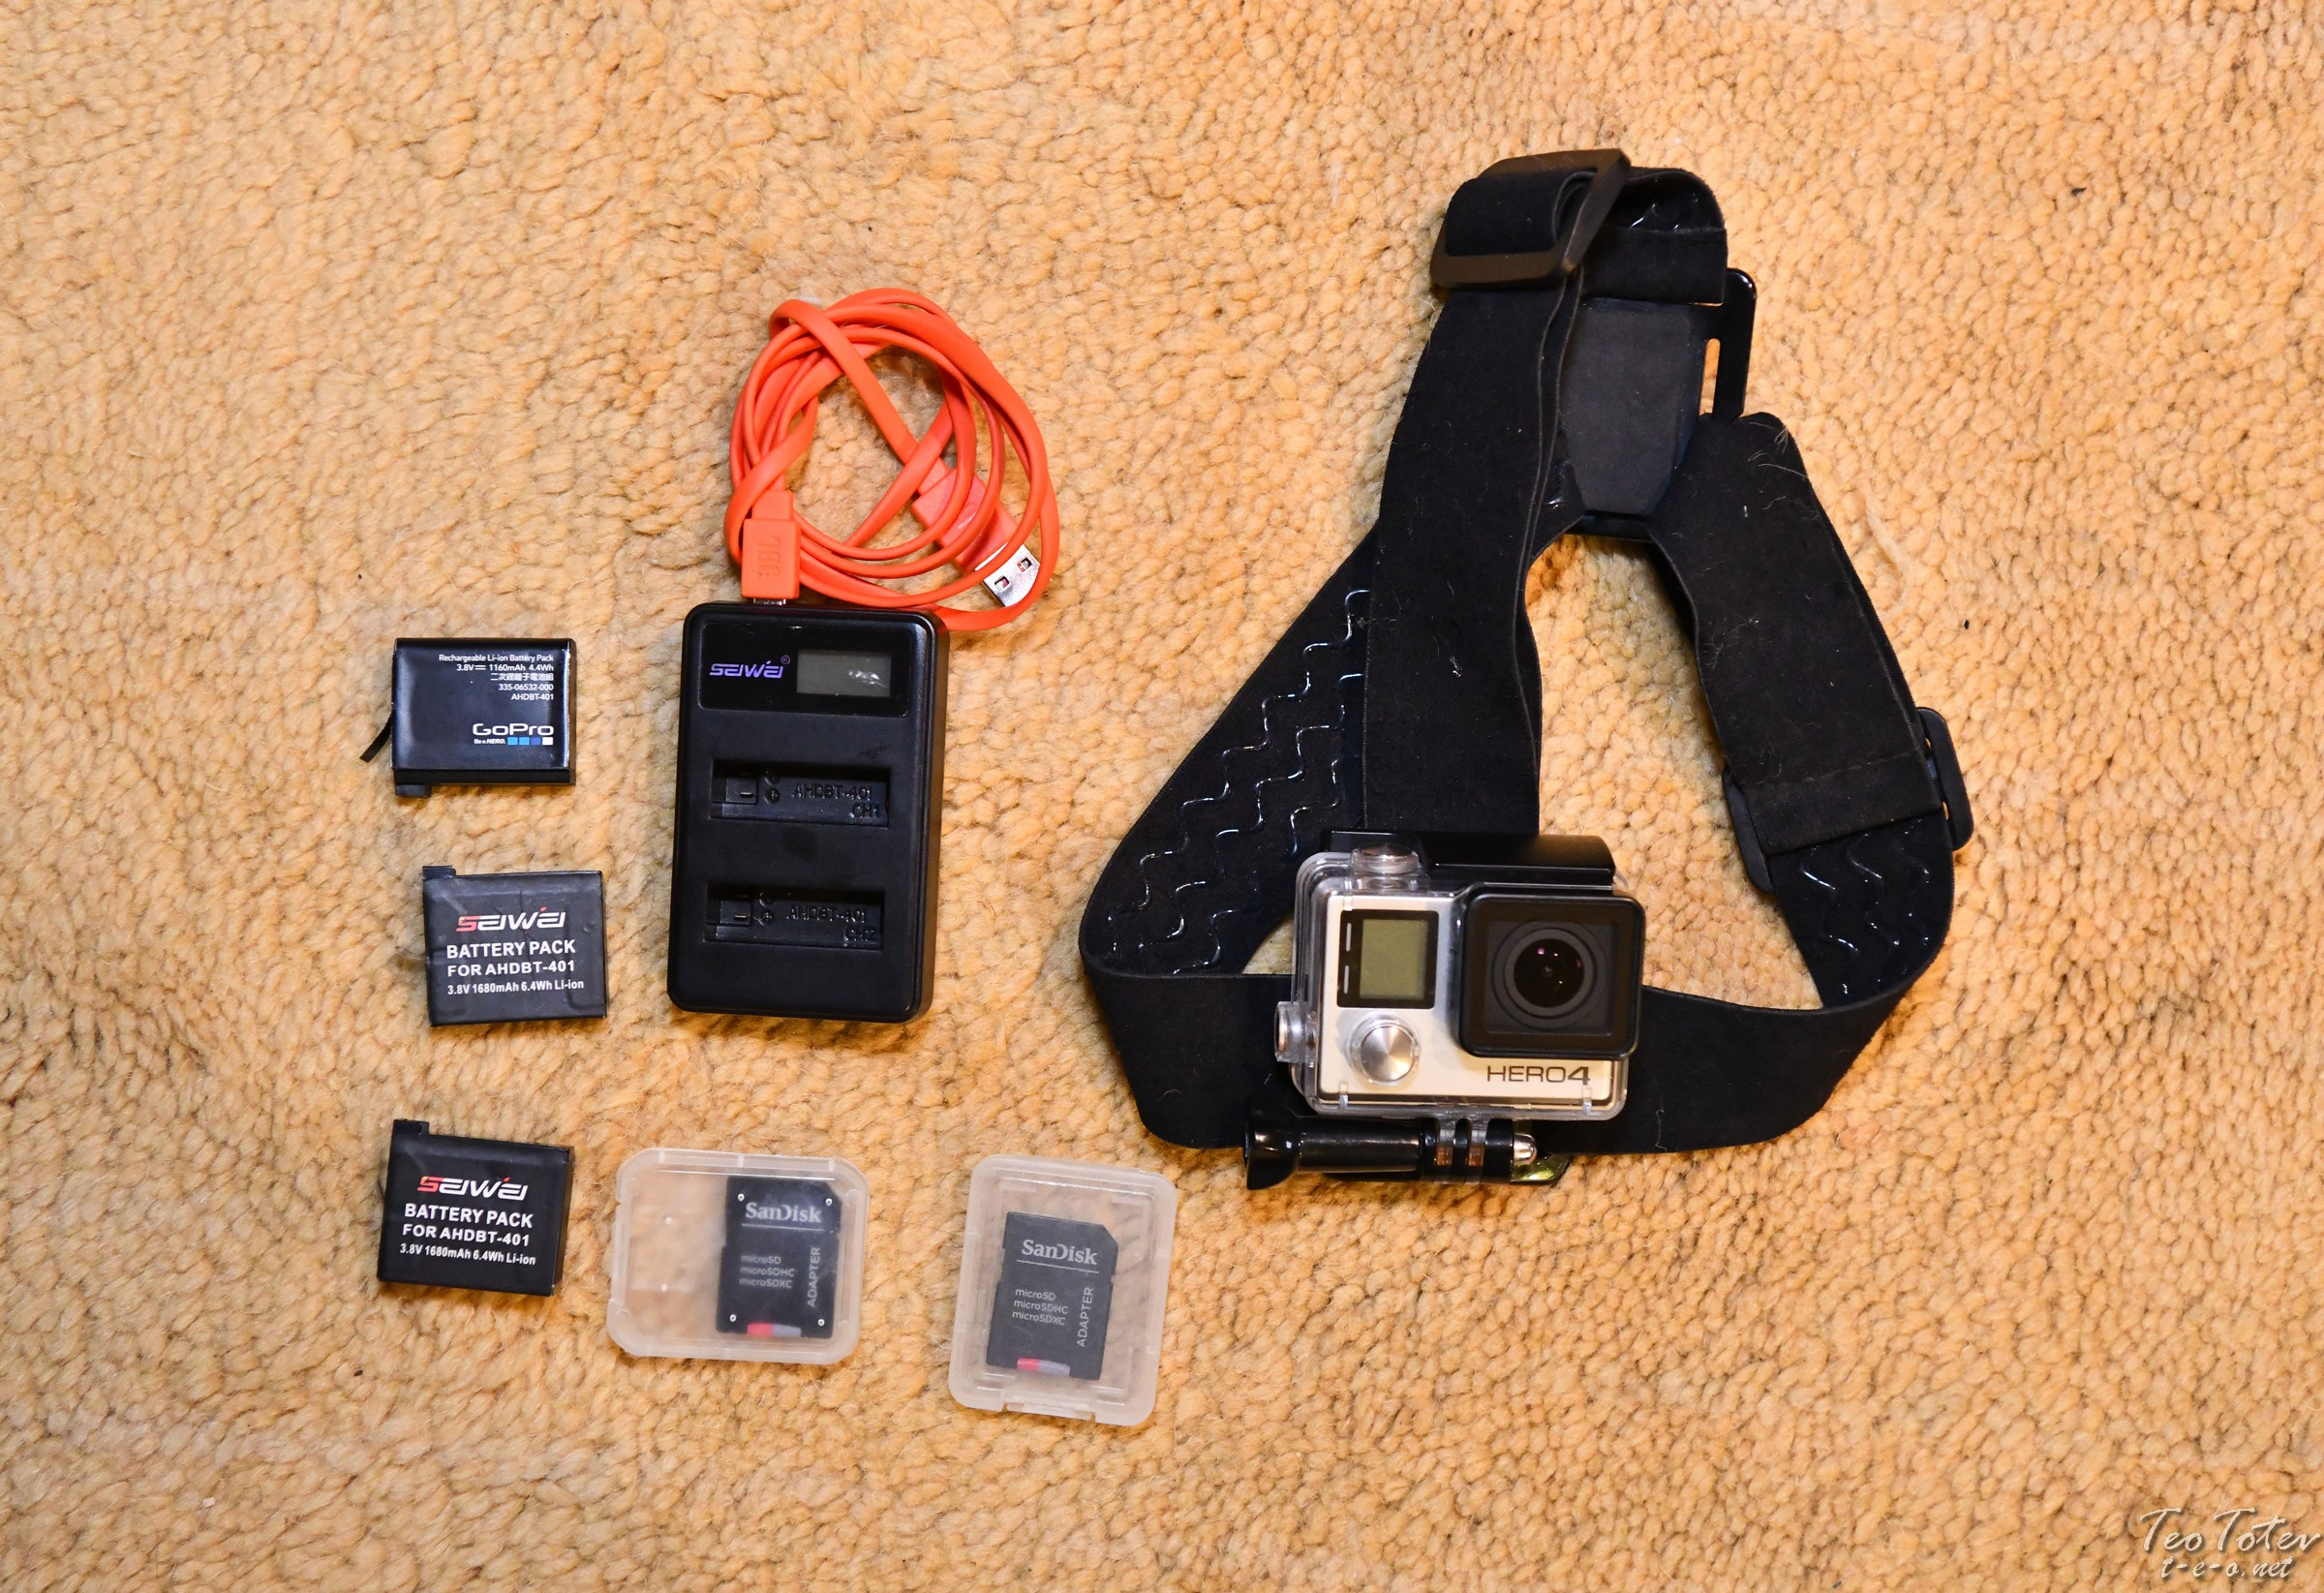 GoPro Hero4 Silver with USB Charger, Batteries and Cards